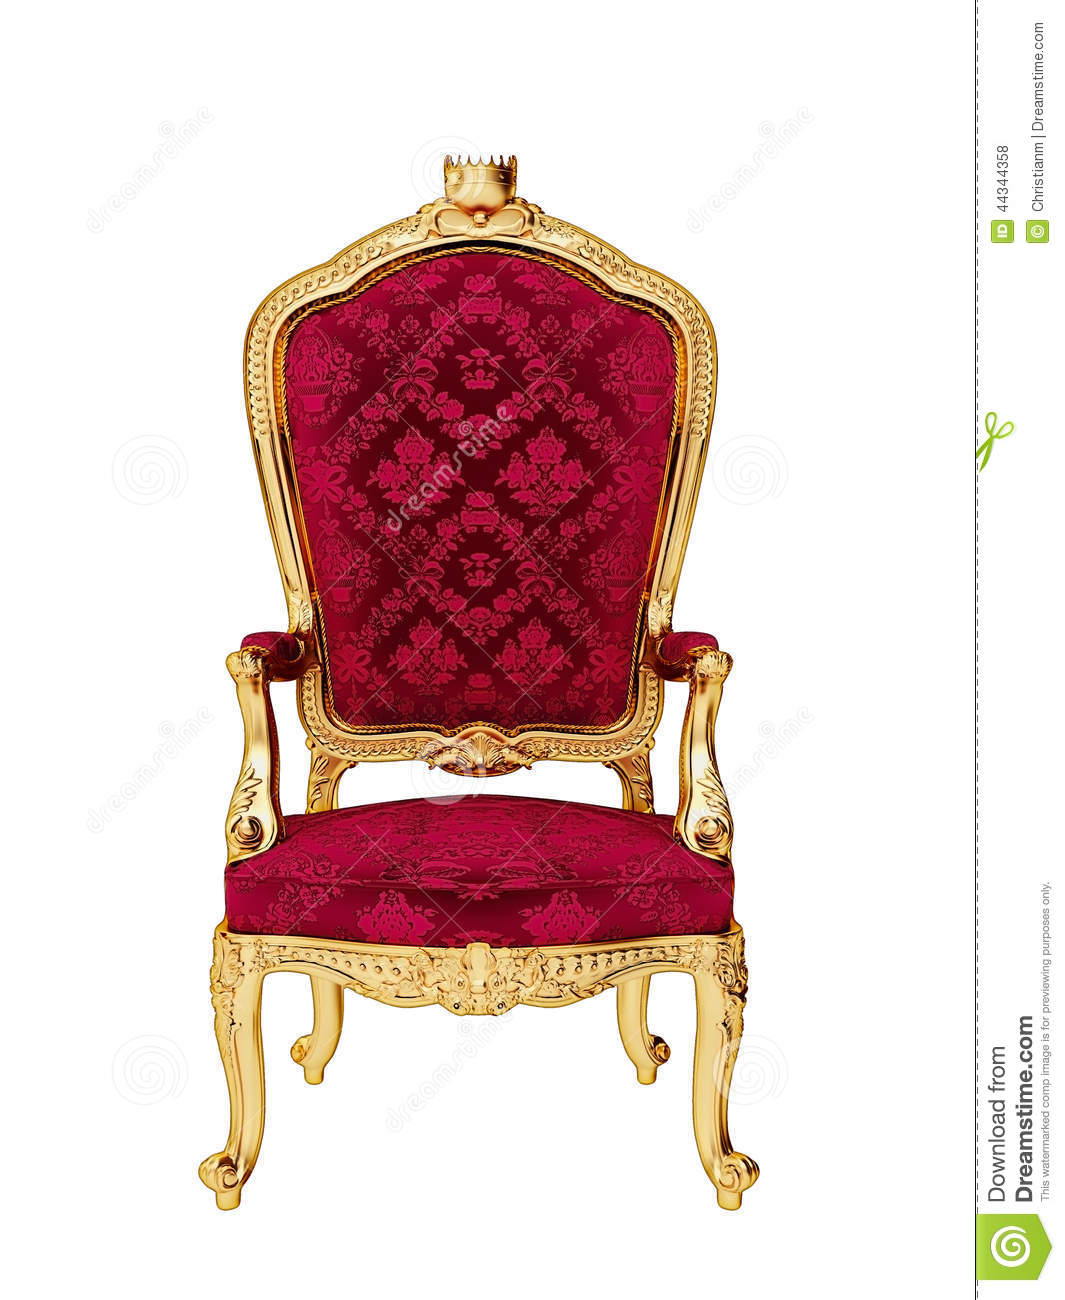 Isolated Throne Stock Illustration Image 44344358